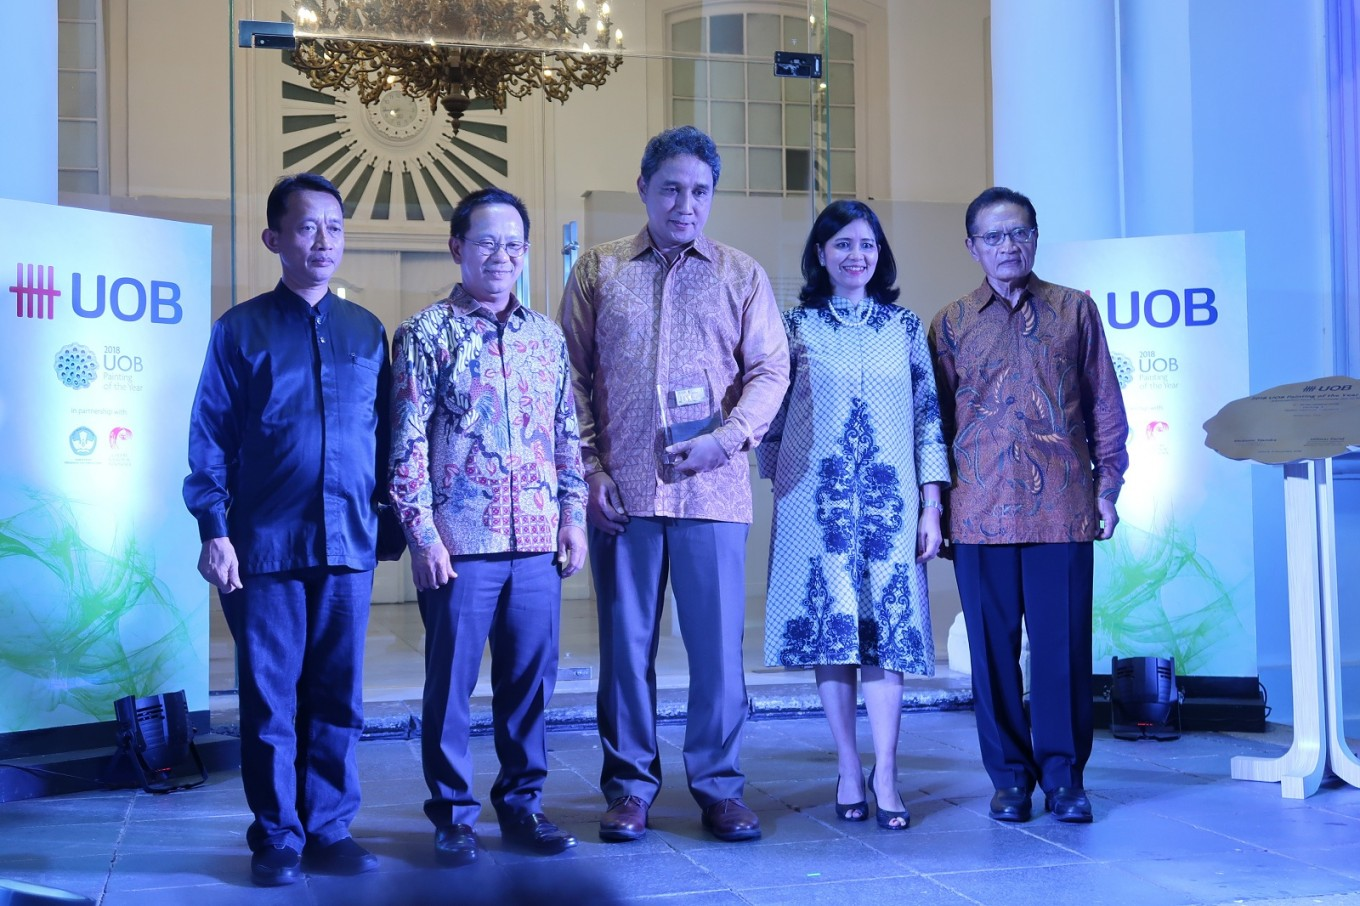 Exhibition for UOB Painting of the Year on until Nov. 19  Art  Culture  The Jakarta Post